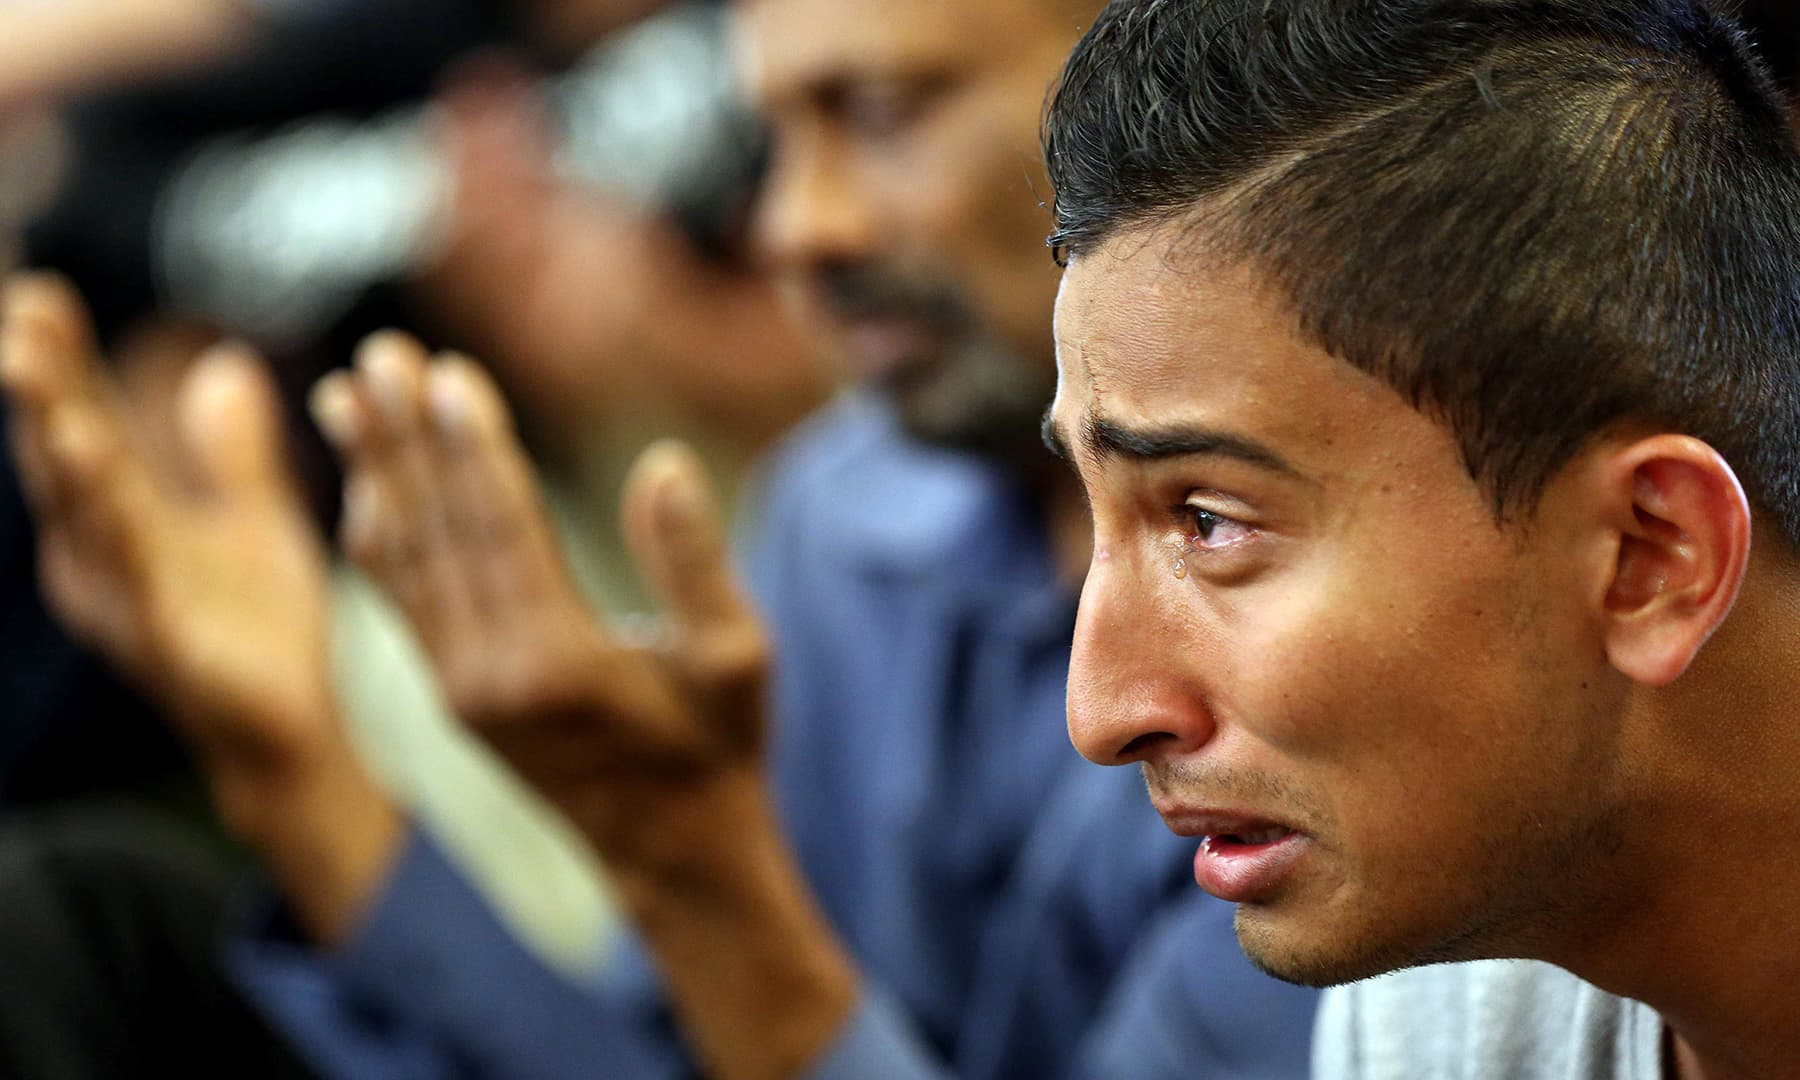 A youth cries during congregational Friday prayers at the Jamia Masjid mosque in Hamilton on March 22. — AFP